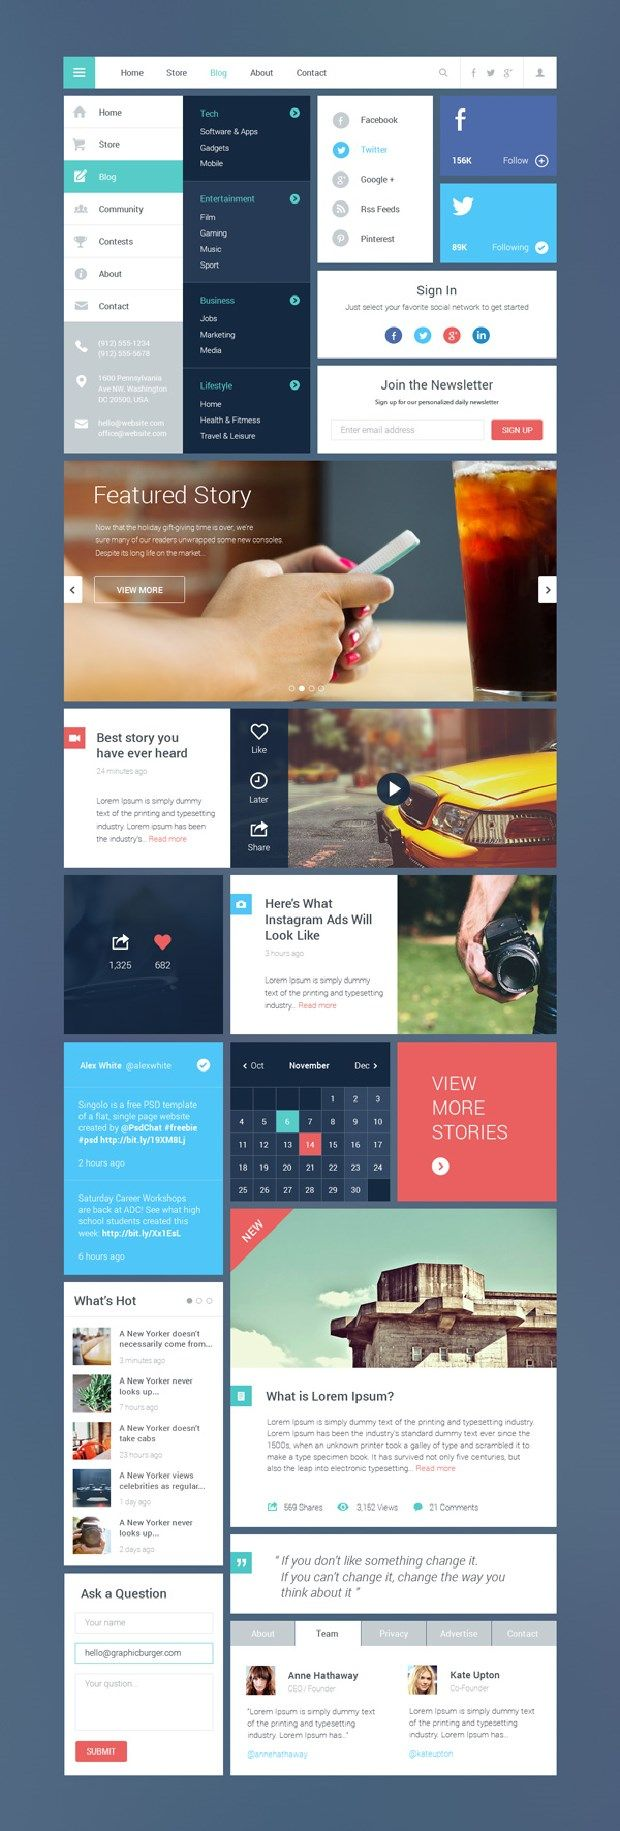 free_ui_kits_for_designers_50